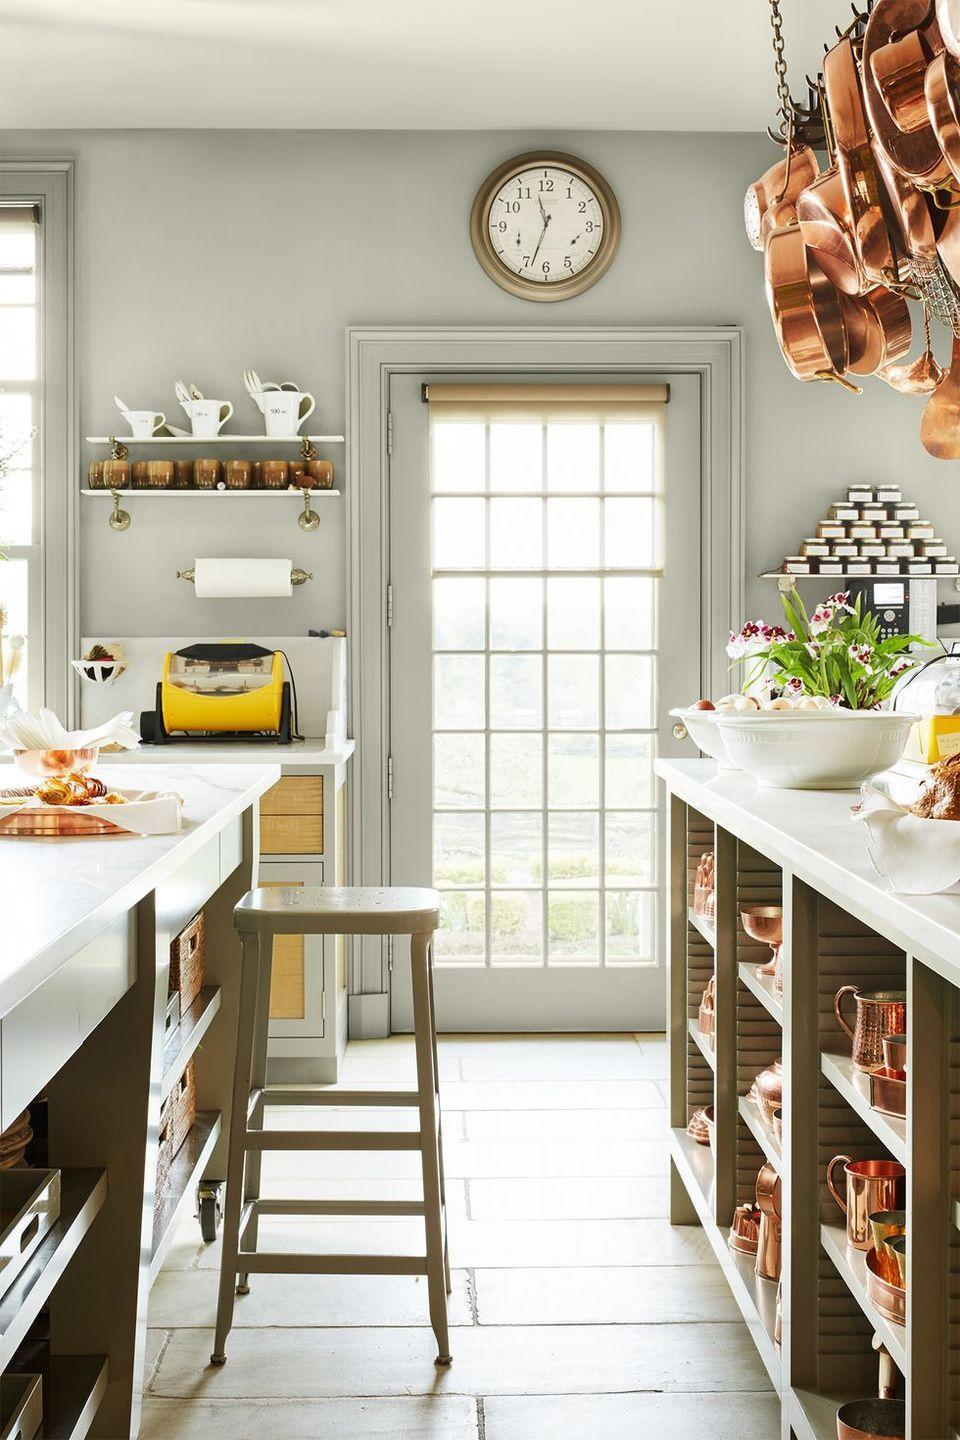 "<p>If there's one person who knows her way around a kitchen, it's <a href=""https://www.countryliving.com/home-design/house-tours/g23489226/martha-stewart-kitchen/"" rel=""nofollow noopener"" target=""_blank"" data-ylk=""slk:Martha Stewart"" class=""link rapid-noclick-resp"">Martha Stewart</a>. Her <a href=""https://www.countryliving.com/home-design/decorating-ideas/g4263/rustic-farmhouse-kitchen-ideas/"" rel=""nofollow noopener"" target=""_blank"" data-ylk=""slk:cooking area"" class=""link rapid-noclick-resp"">cooking area</a> features copper pots and pans with an impressive collection of matching servingware.</p><p><a class=""link rapid-noclick-resp"" href=""https://fave.co/2M6HFm7"" rel=""nofollow noopener"" target=""_blank"" data-ylk=""slk:SHOP COPPER COOKWARE"">SHOP COPPER COOKWARE</a></p>"